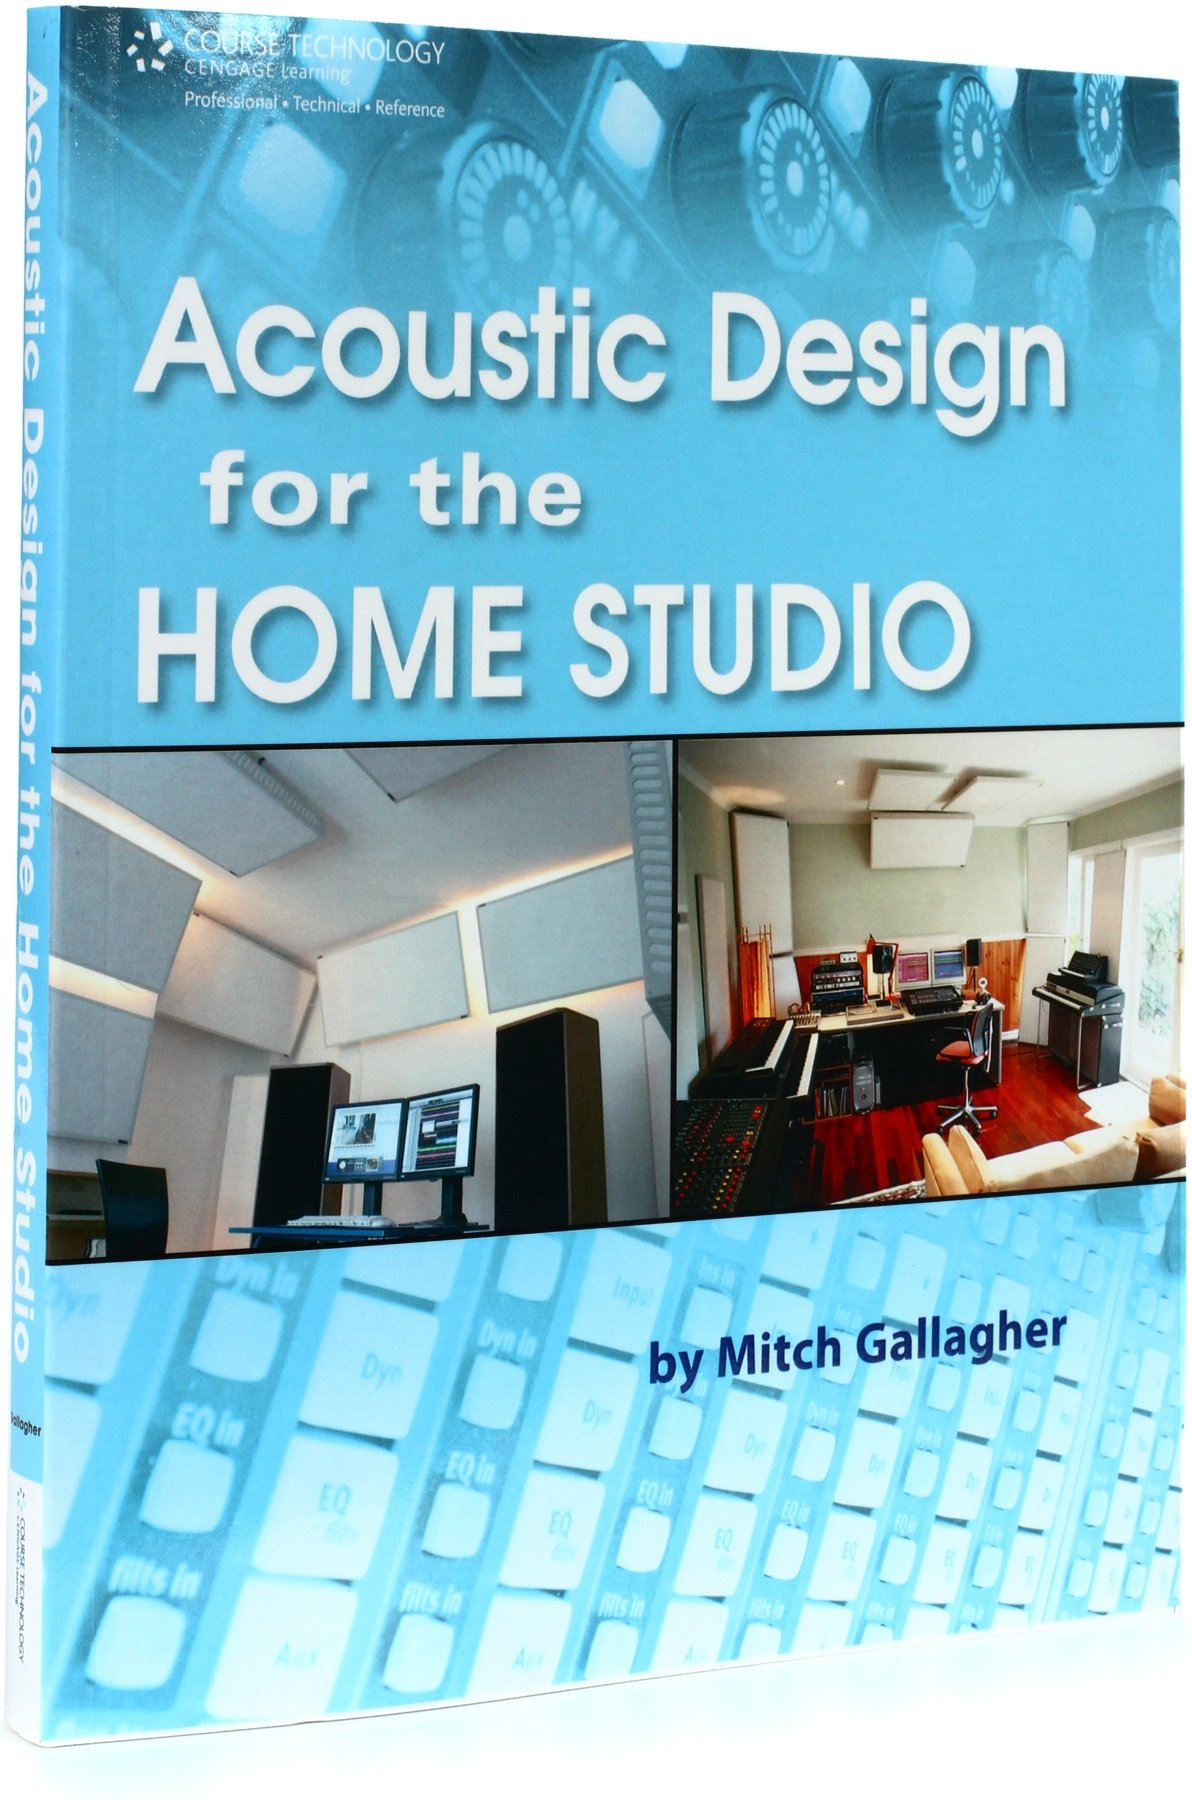 Design for the home - Thomson Course Technology Acoustic Design For The Home Studio Image 1